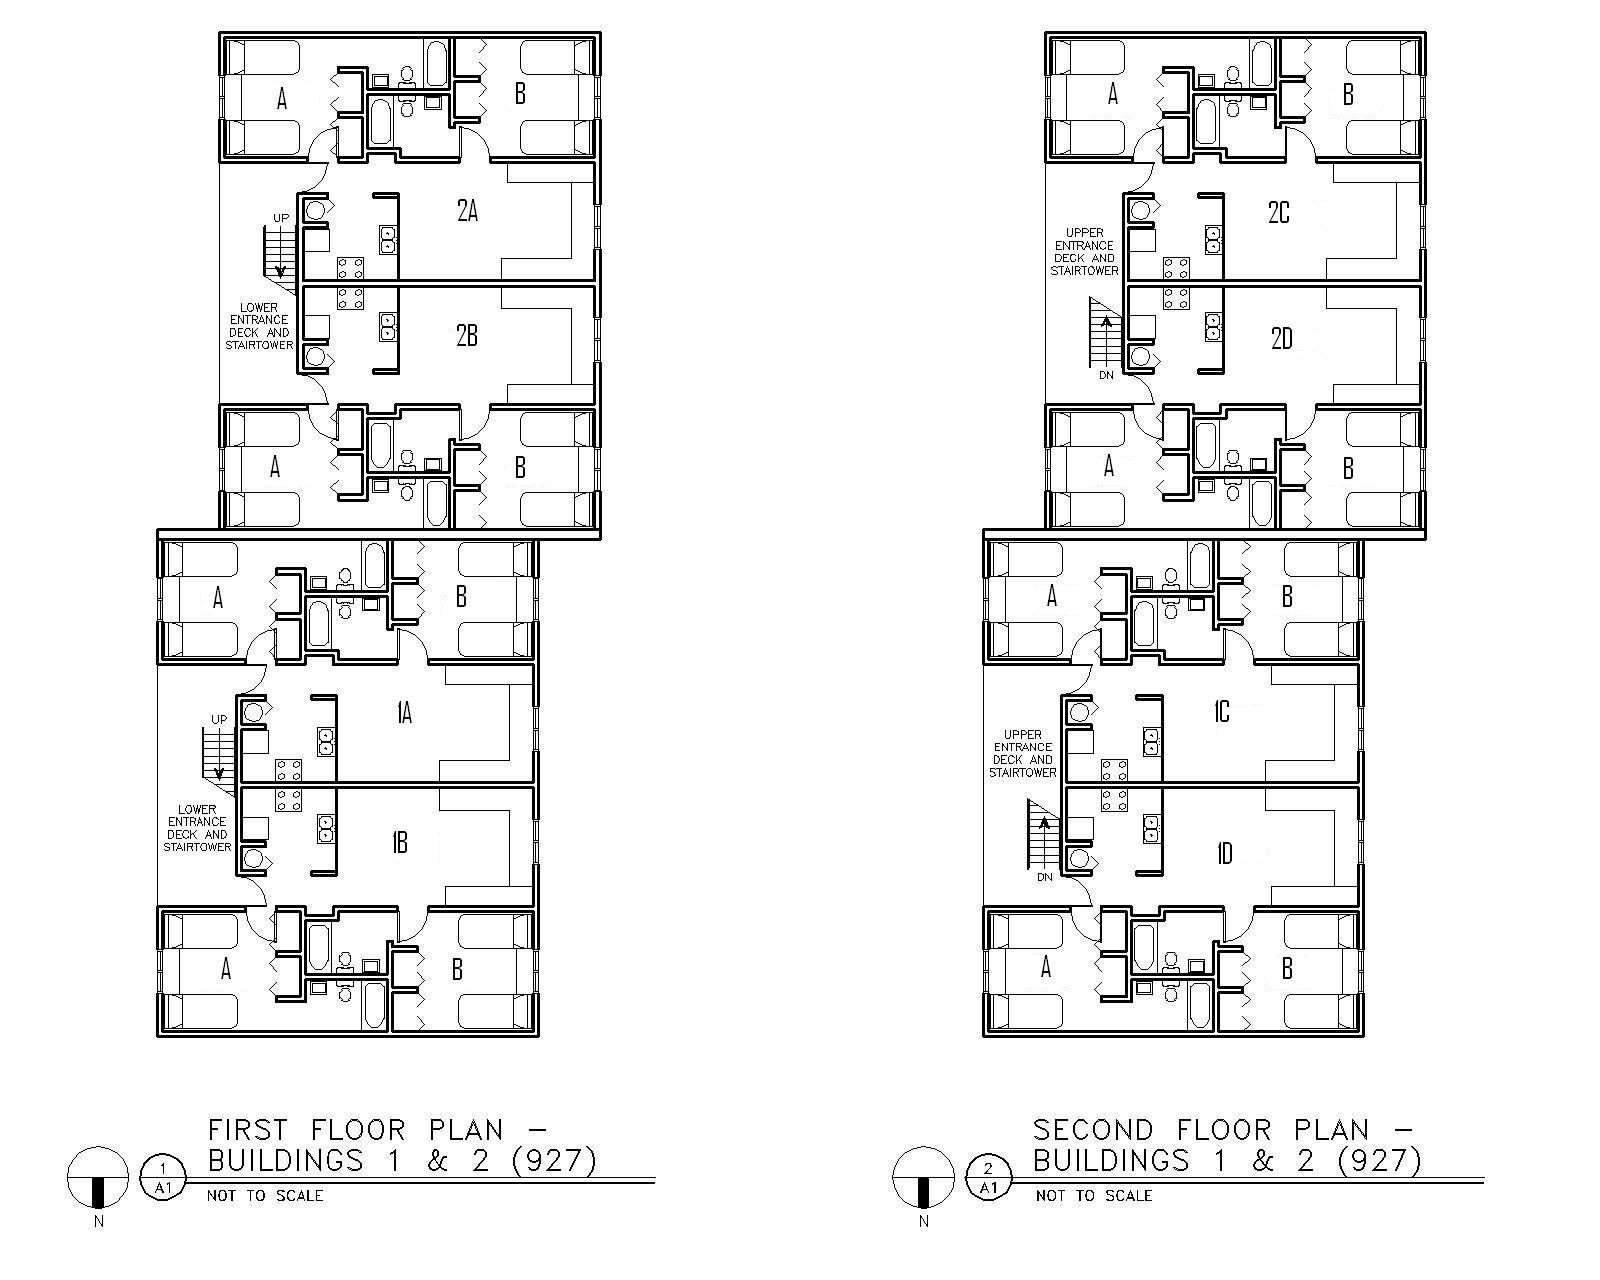 Floor Plan for Buildings 1 & 2